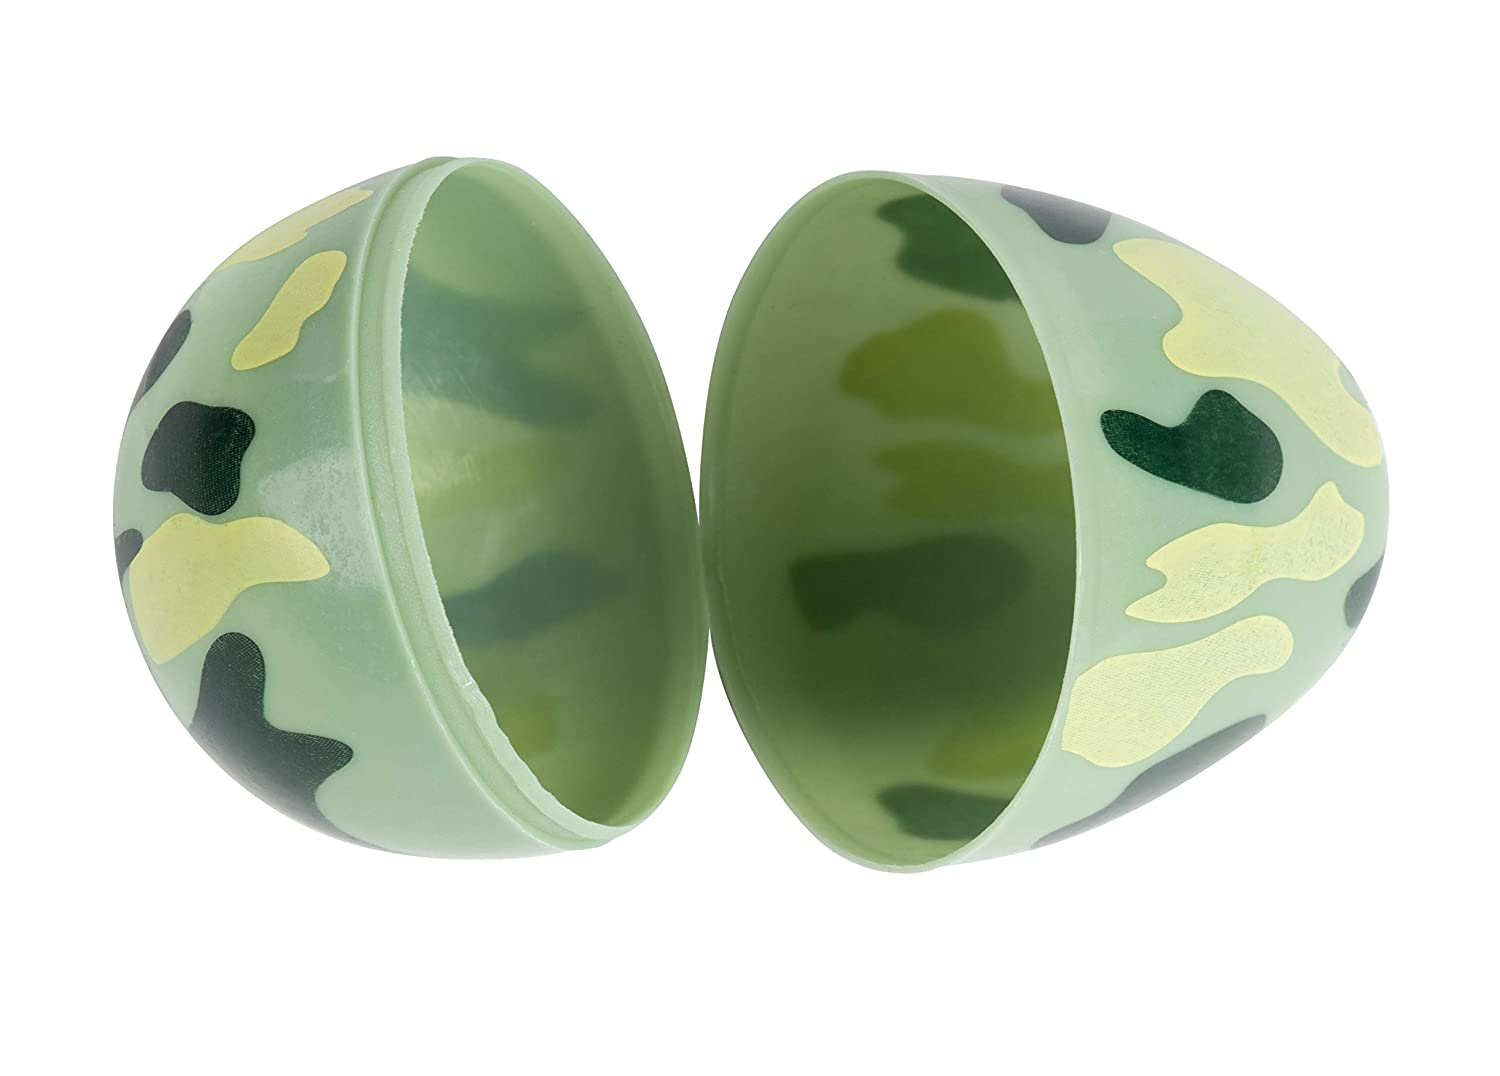 Camouflage Surprise Party Favor Eggs with Hinge Closure Juvale 48-Count Plastic Easter Eggs 1.6 x 2.3 x 1.6 Inches